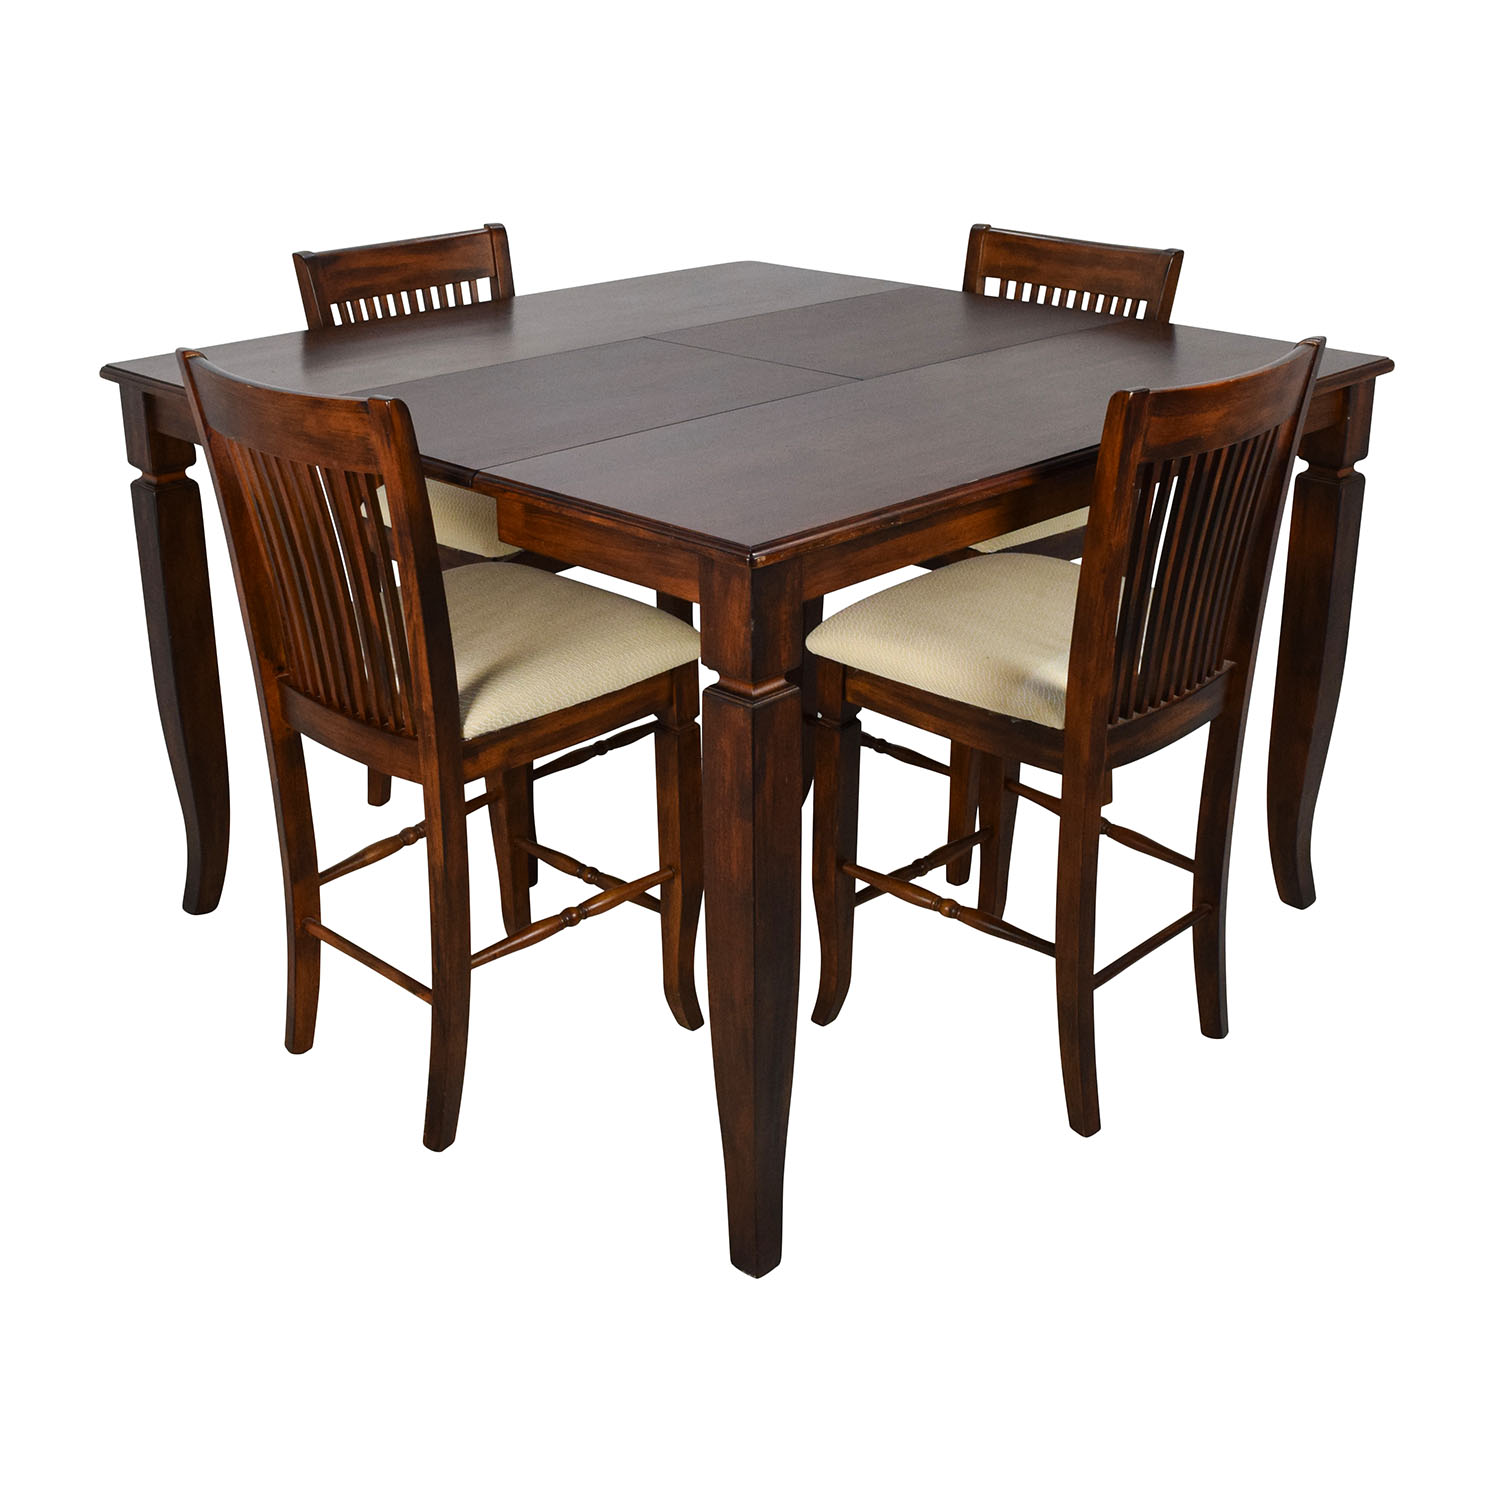 Tall Dinner Table Set Of 75 Off Tall Extendable Dining Room Table Set Tables